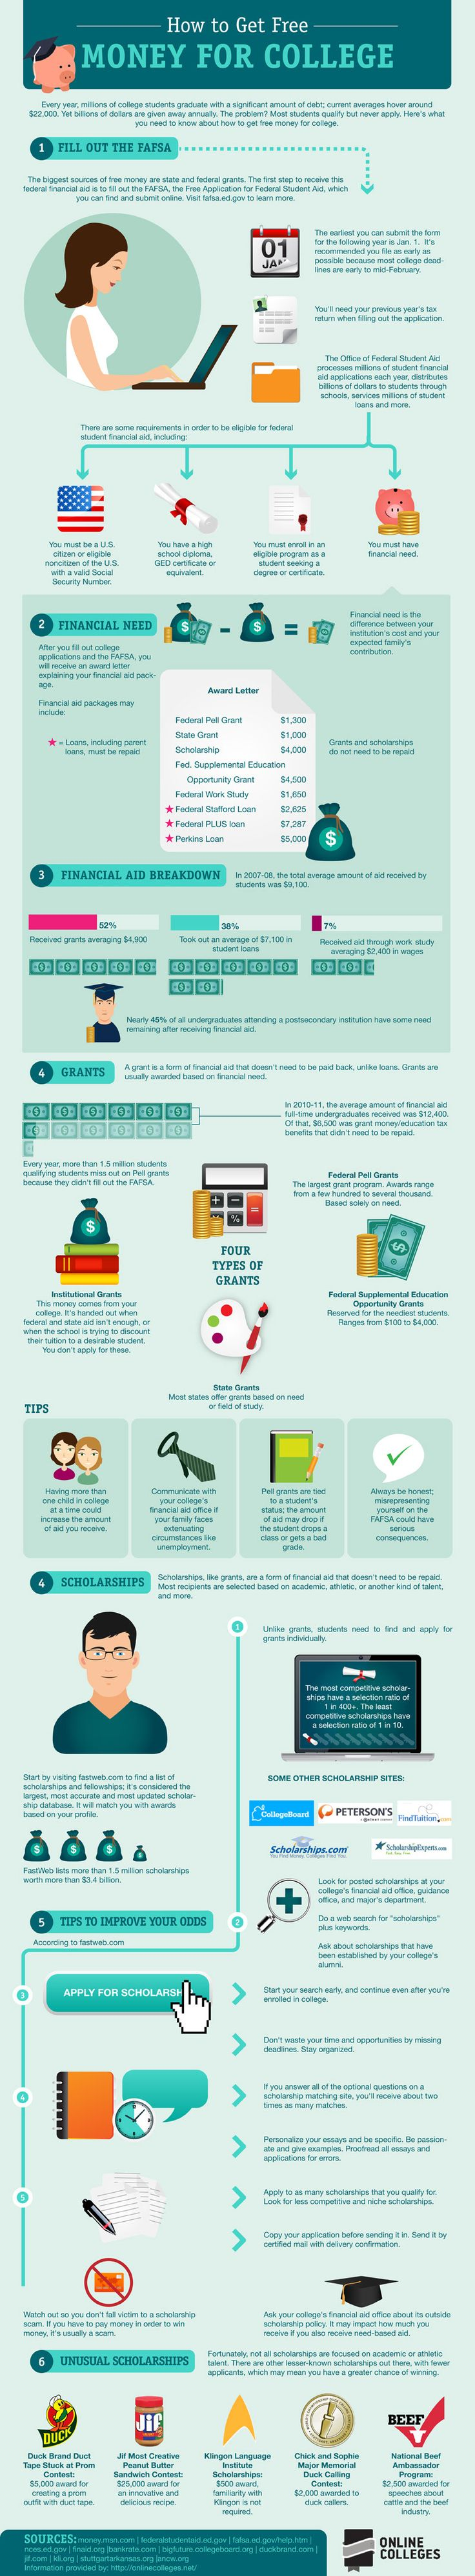 Money-For-College-infographic